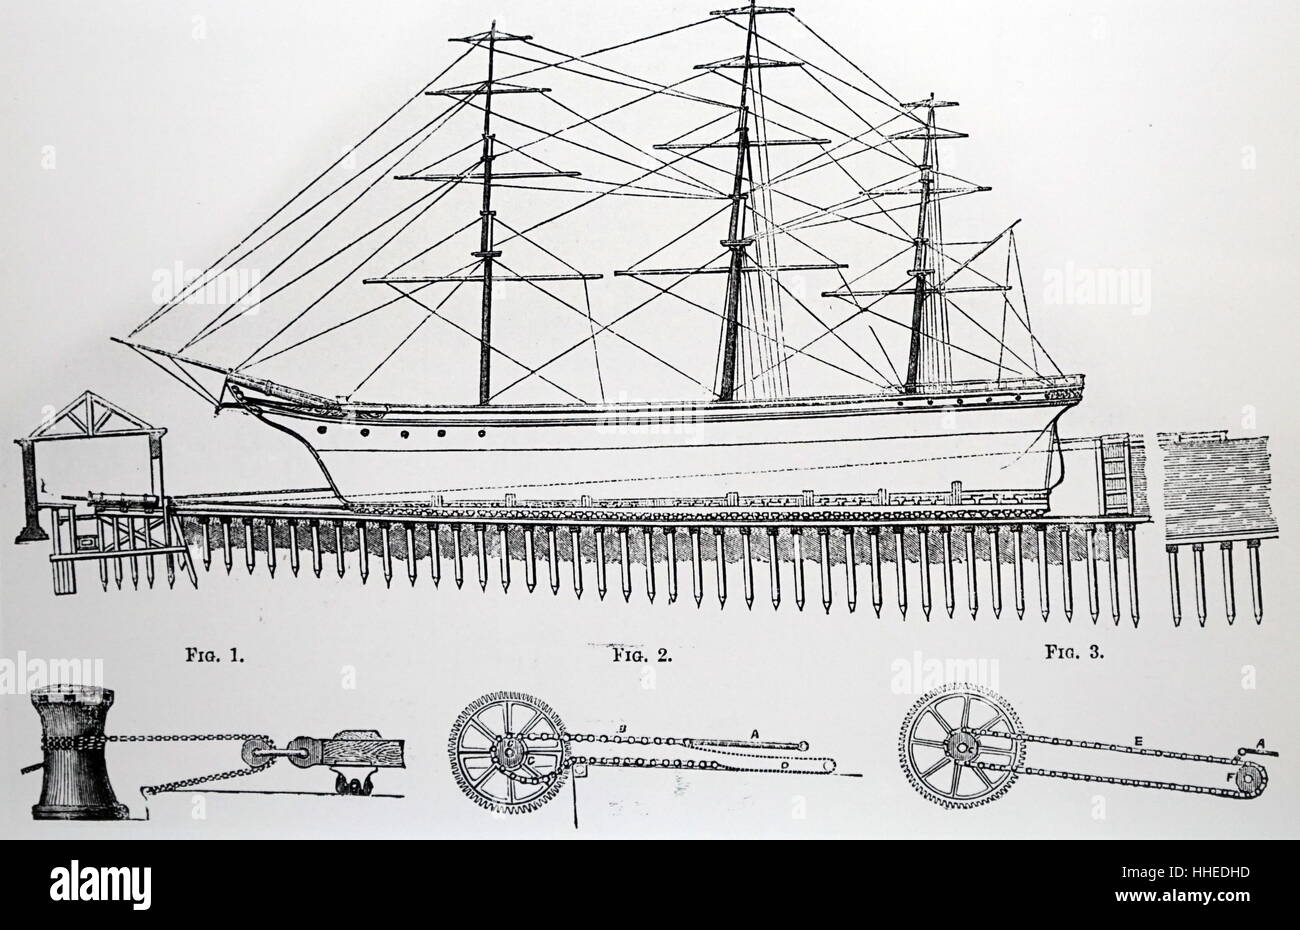 hight resolution of diagram of a special dry dock for hauling up a ship for repairs designed by thomas morton of leith dated 19th century